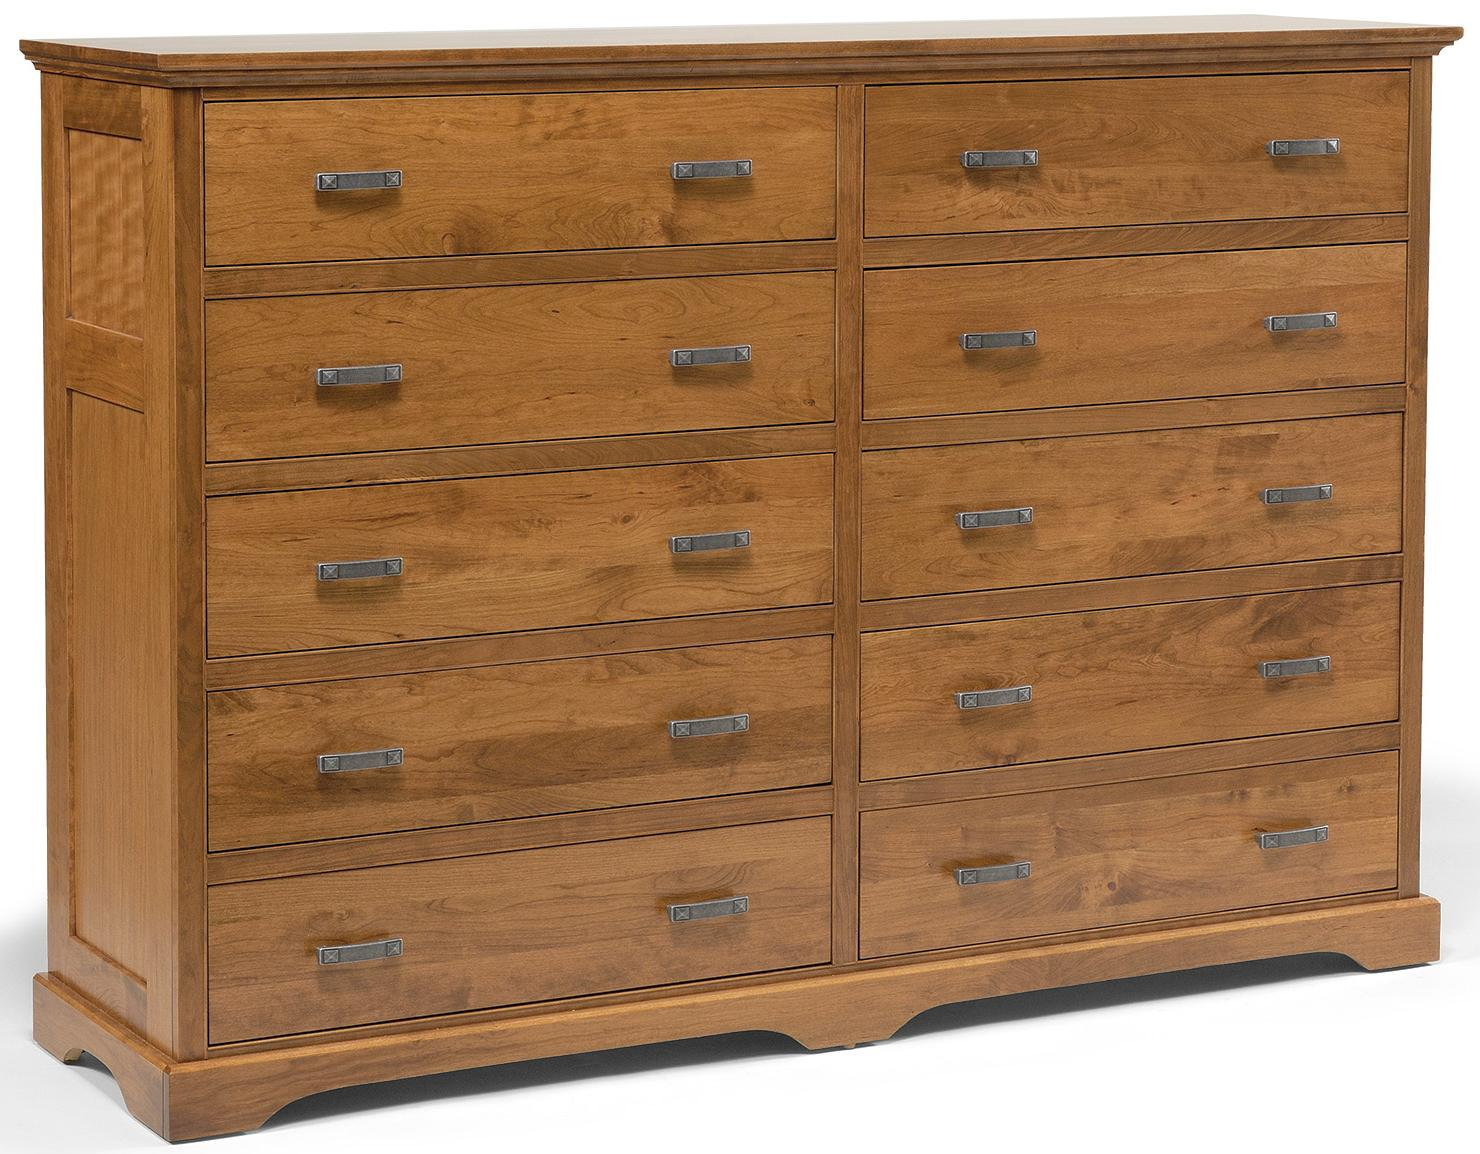 Elegance 10-Drawer Double Dresser by Daniel's Amish at Saugerties Furniture Mart